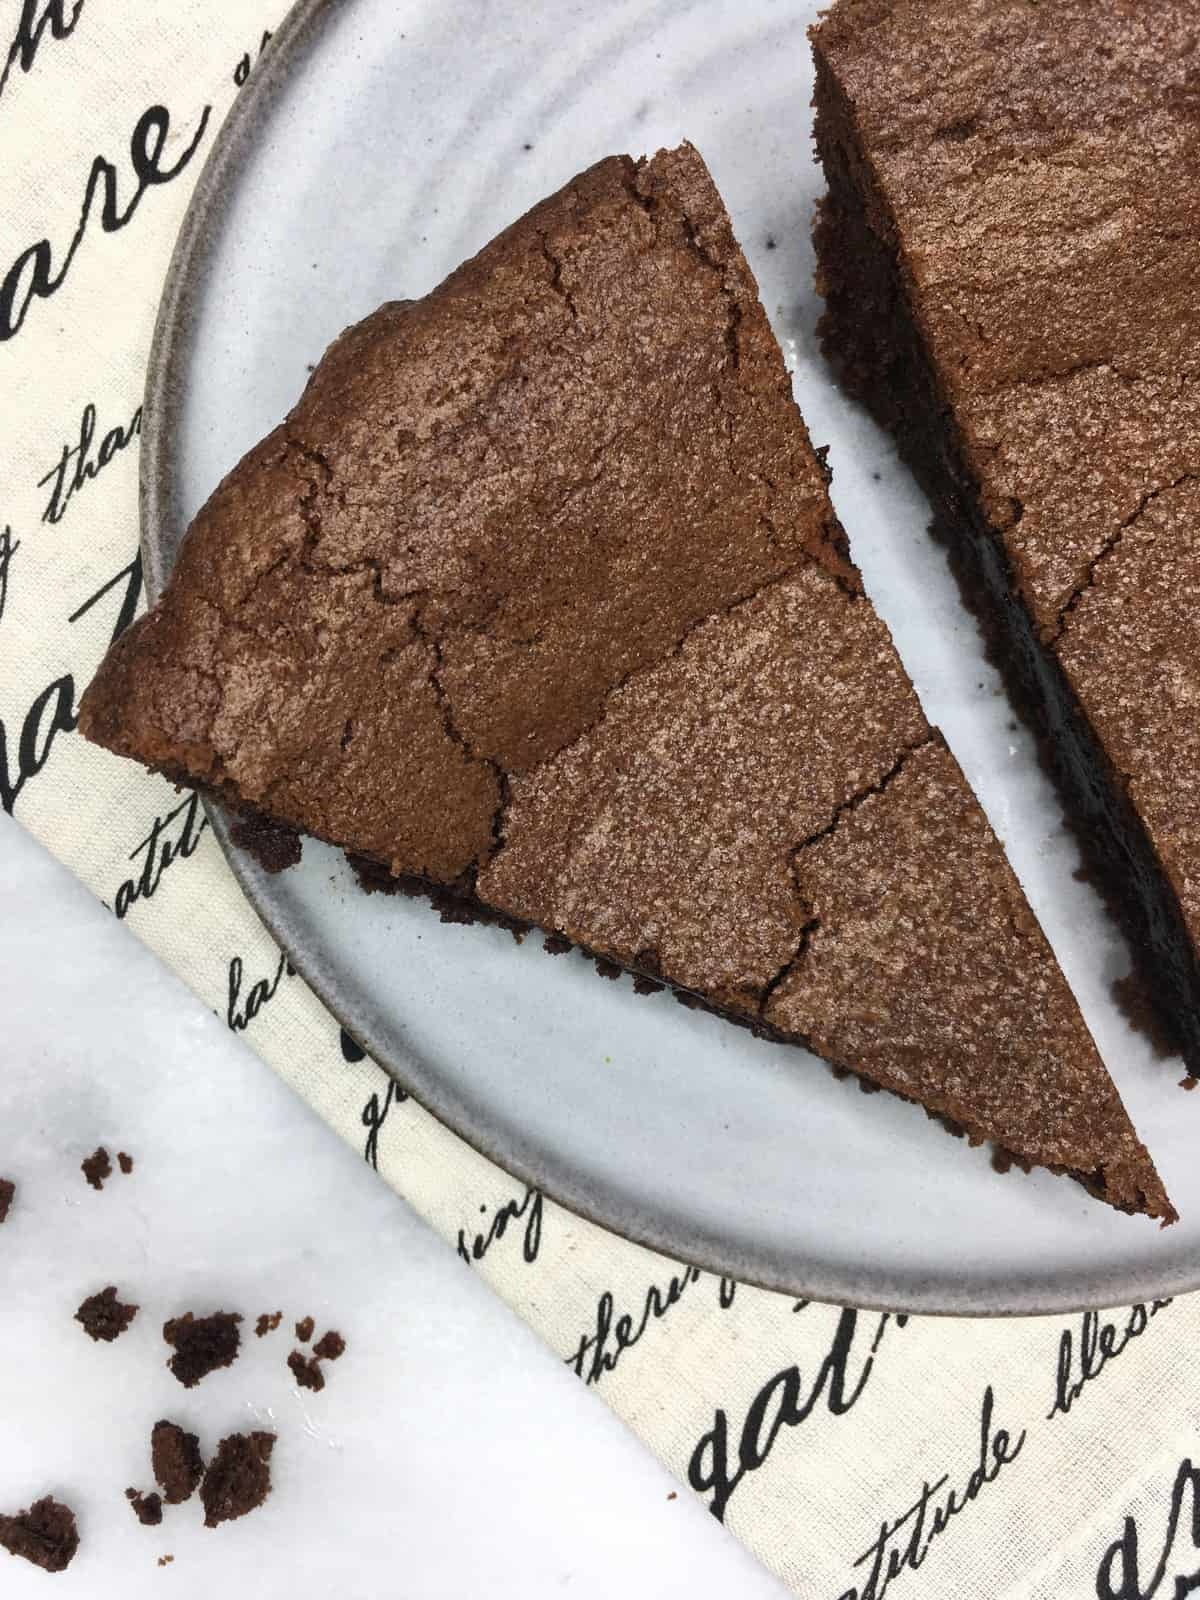 Two slices of French chocolate cake on a grey plate: Overhead view